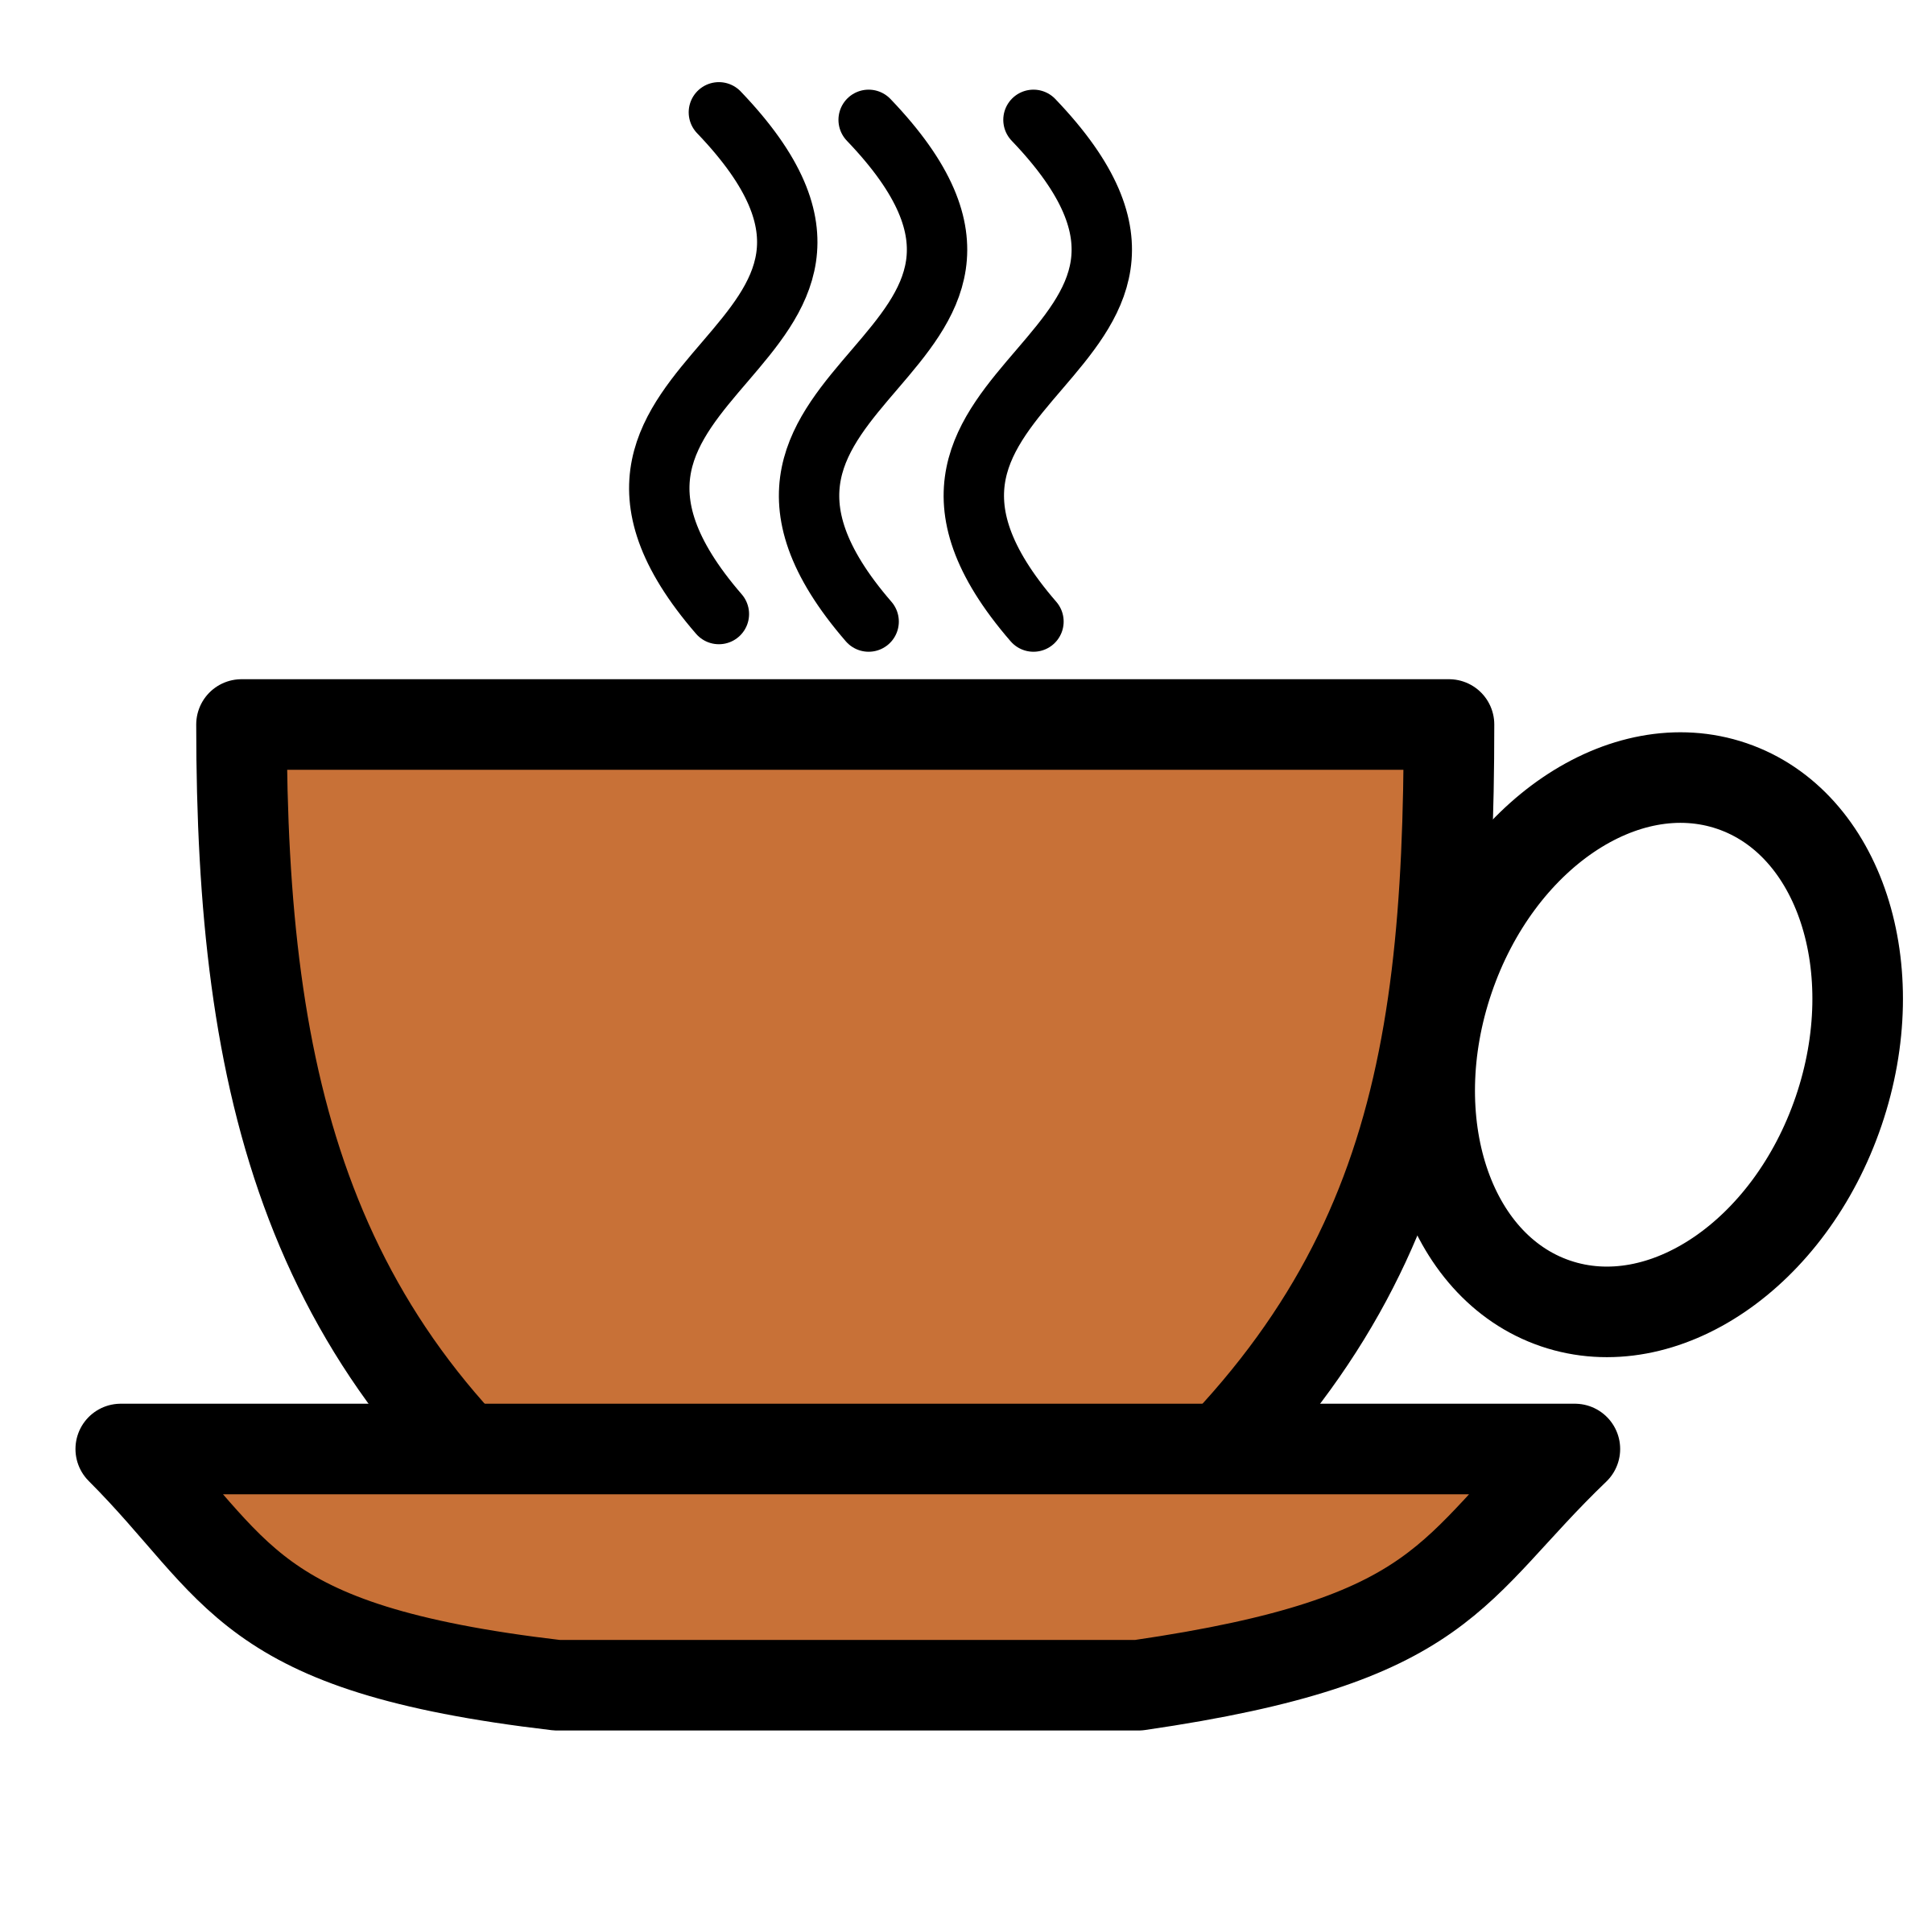 Cup big image png. Clipart coffee icon